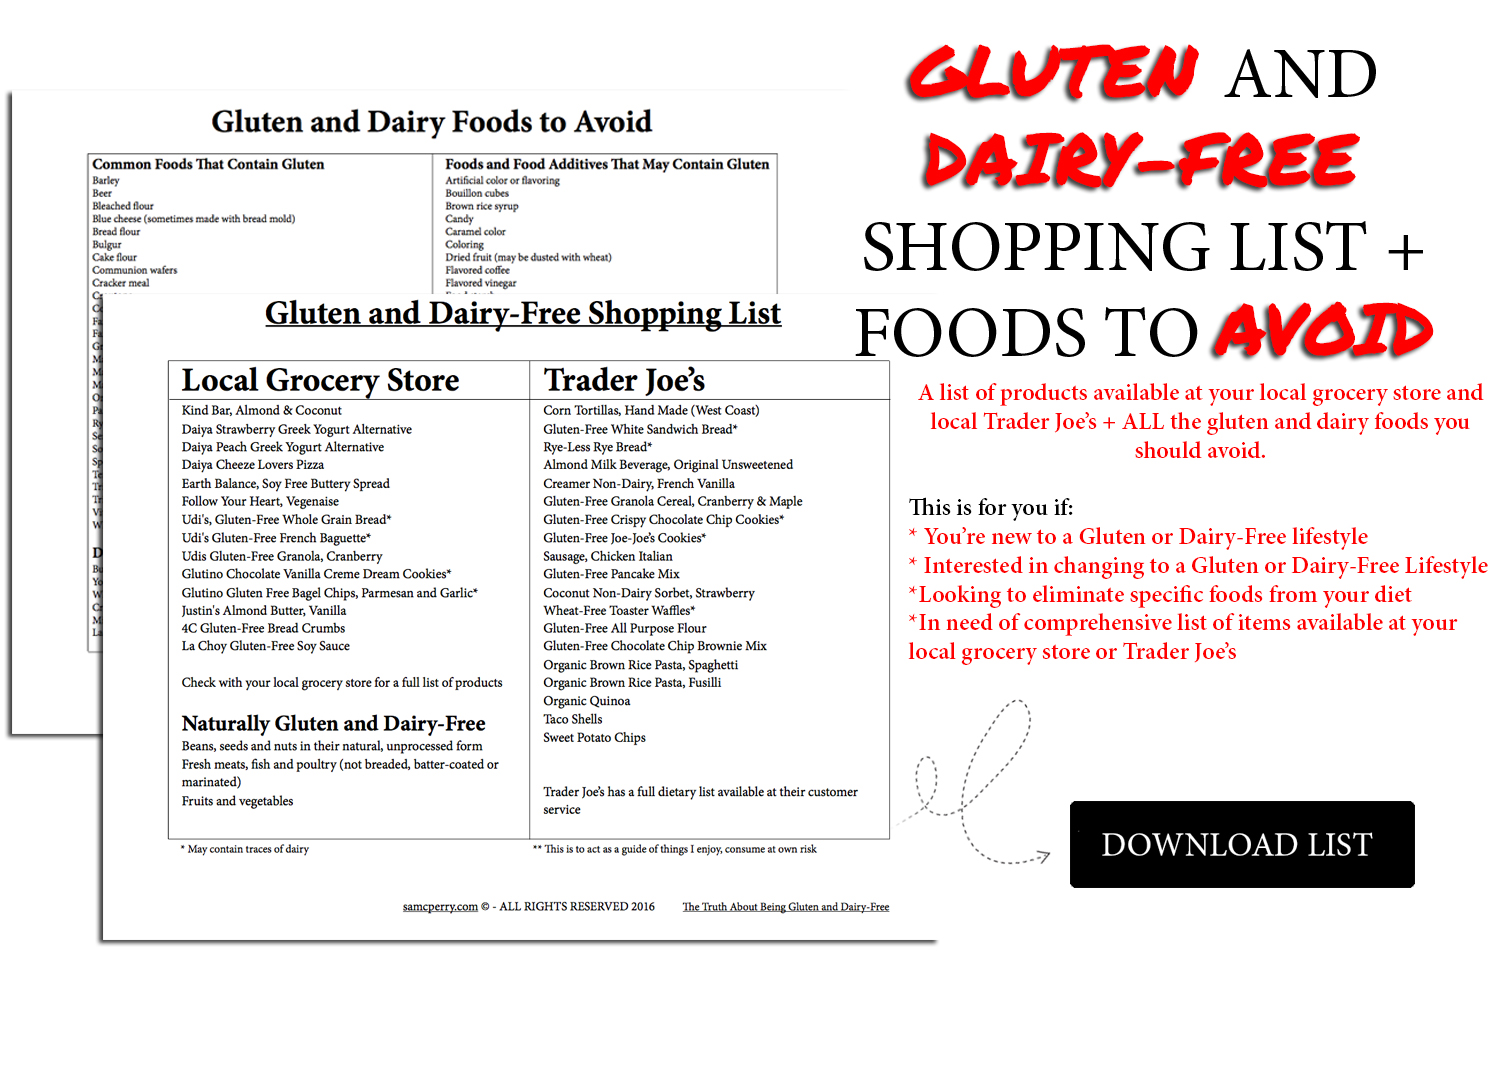 sam-c-perry-the-truth-about-being-gluten-and-dairy-free-grocery-list-foods-to-avoid.jpg